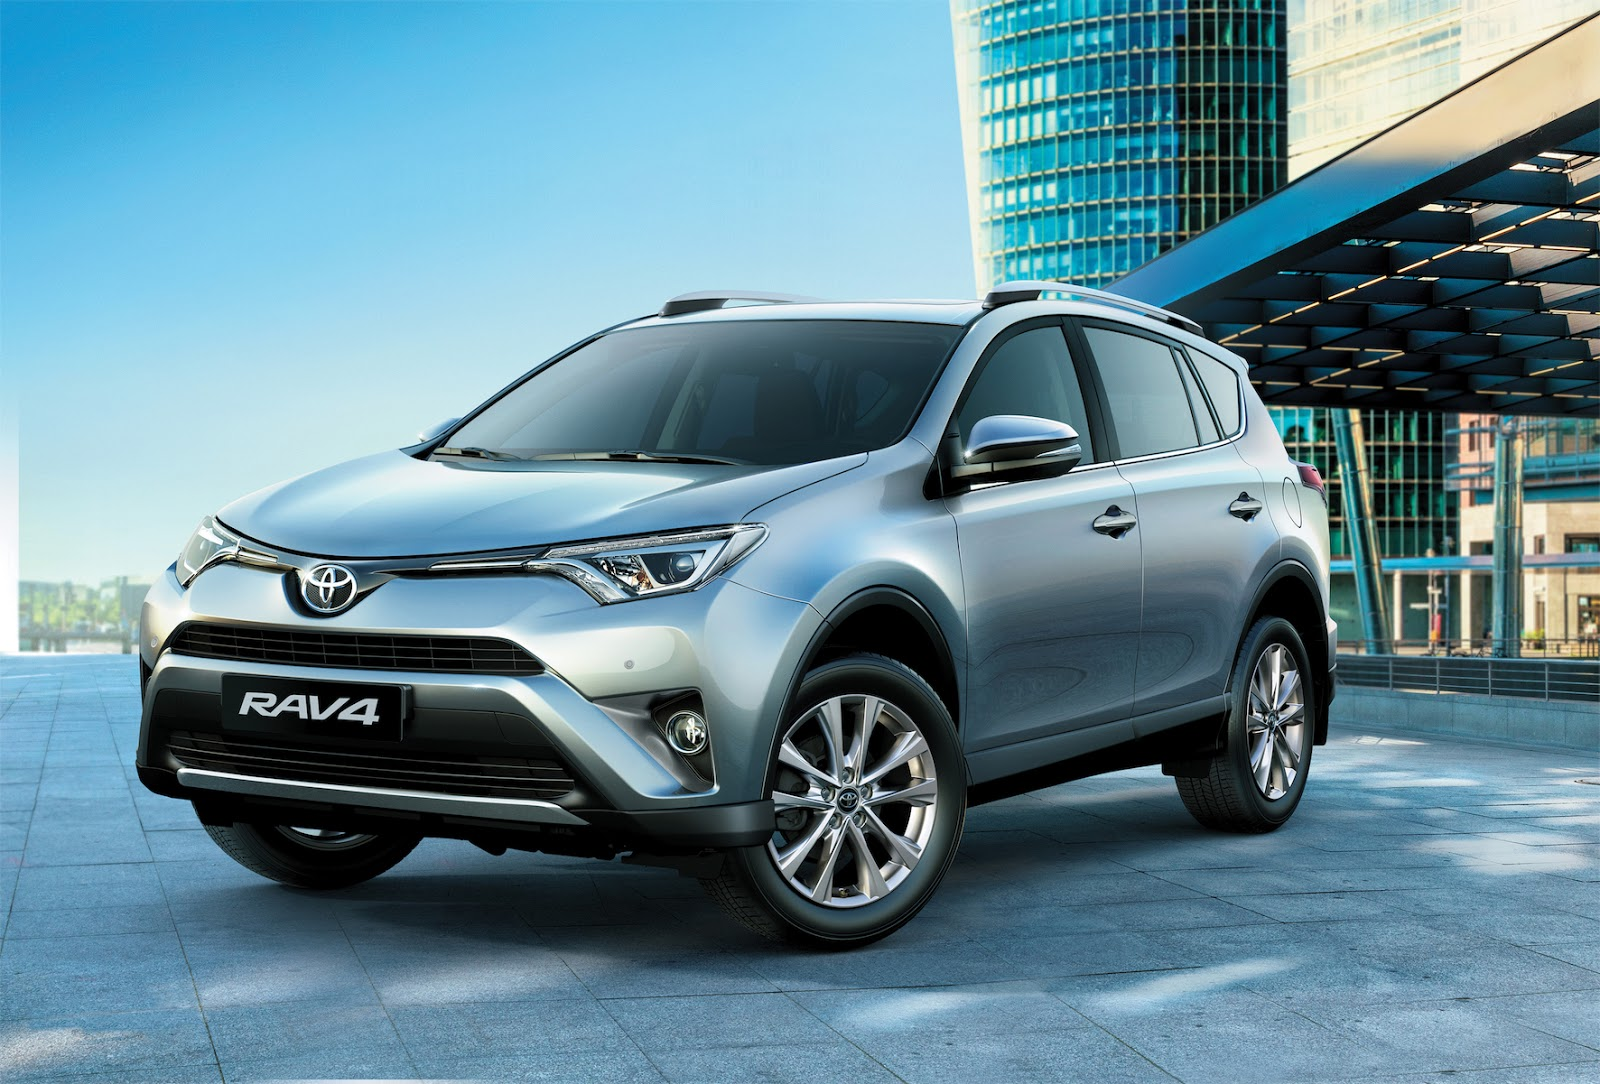 2016 Redesigned Toyota Rav4 Launched In U A E